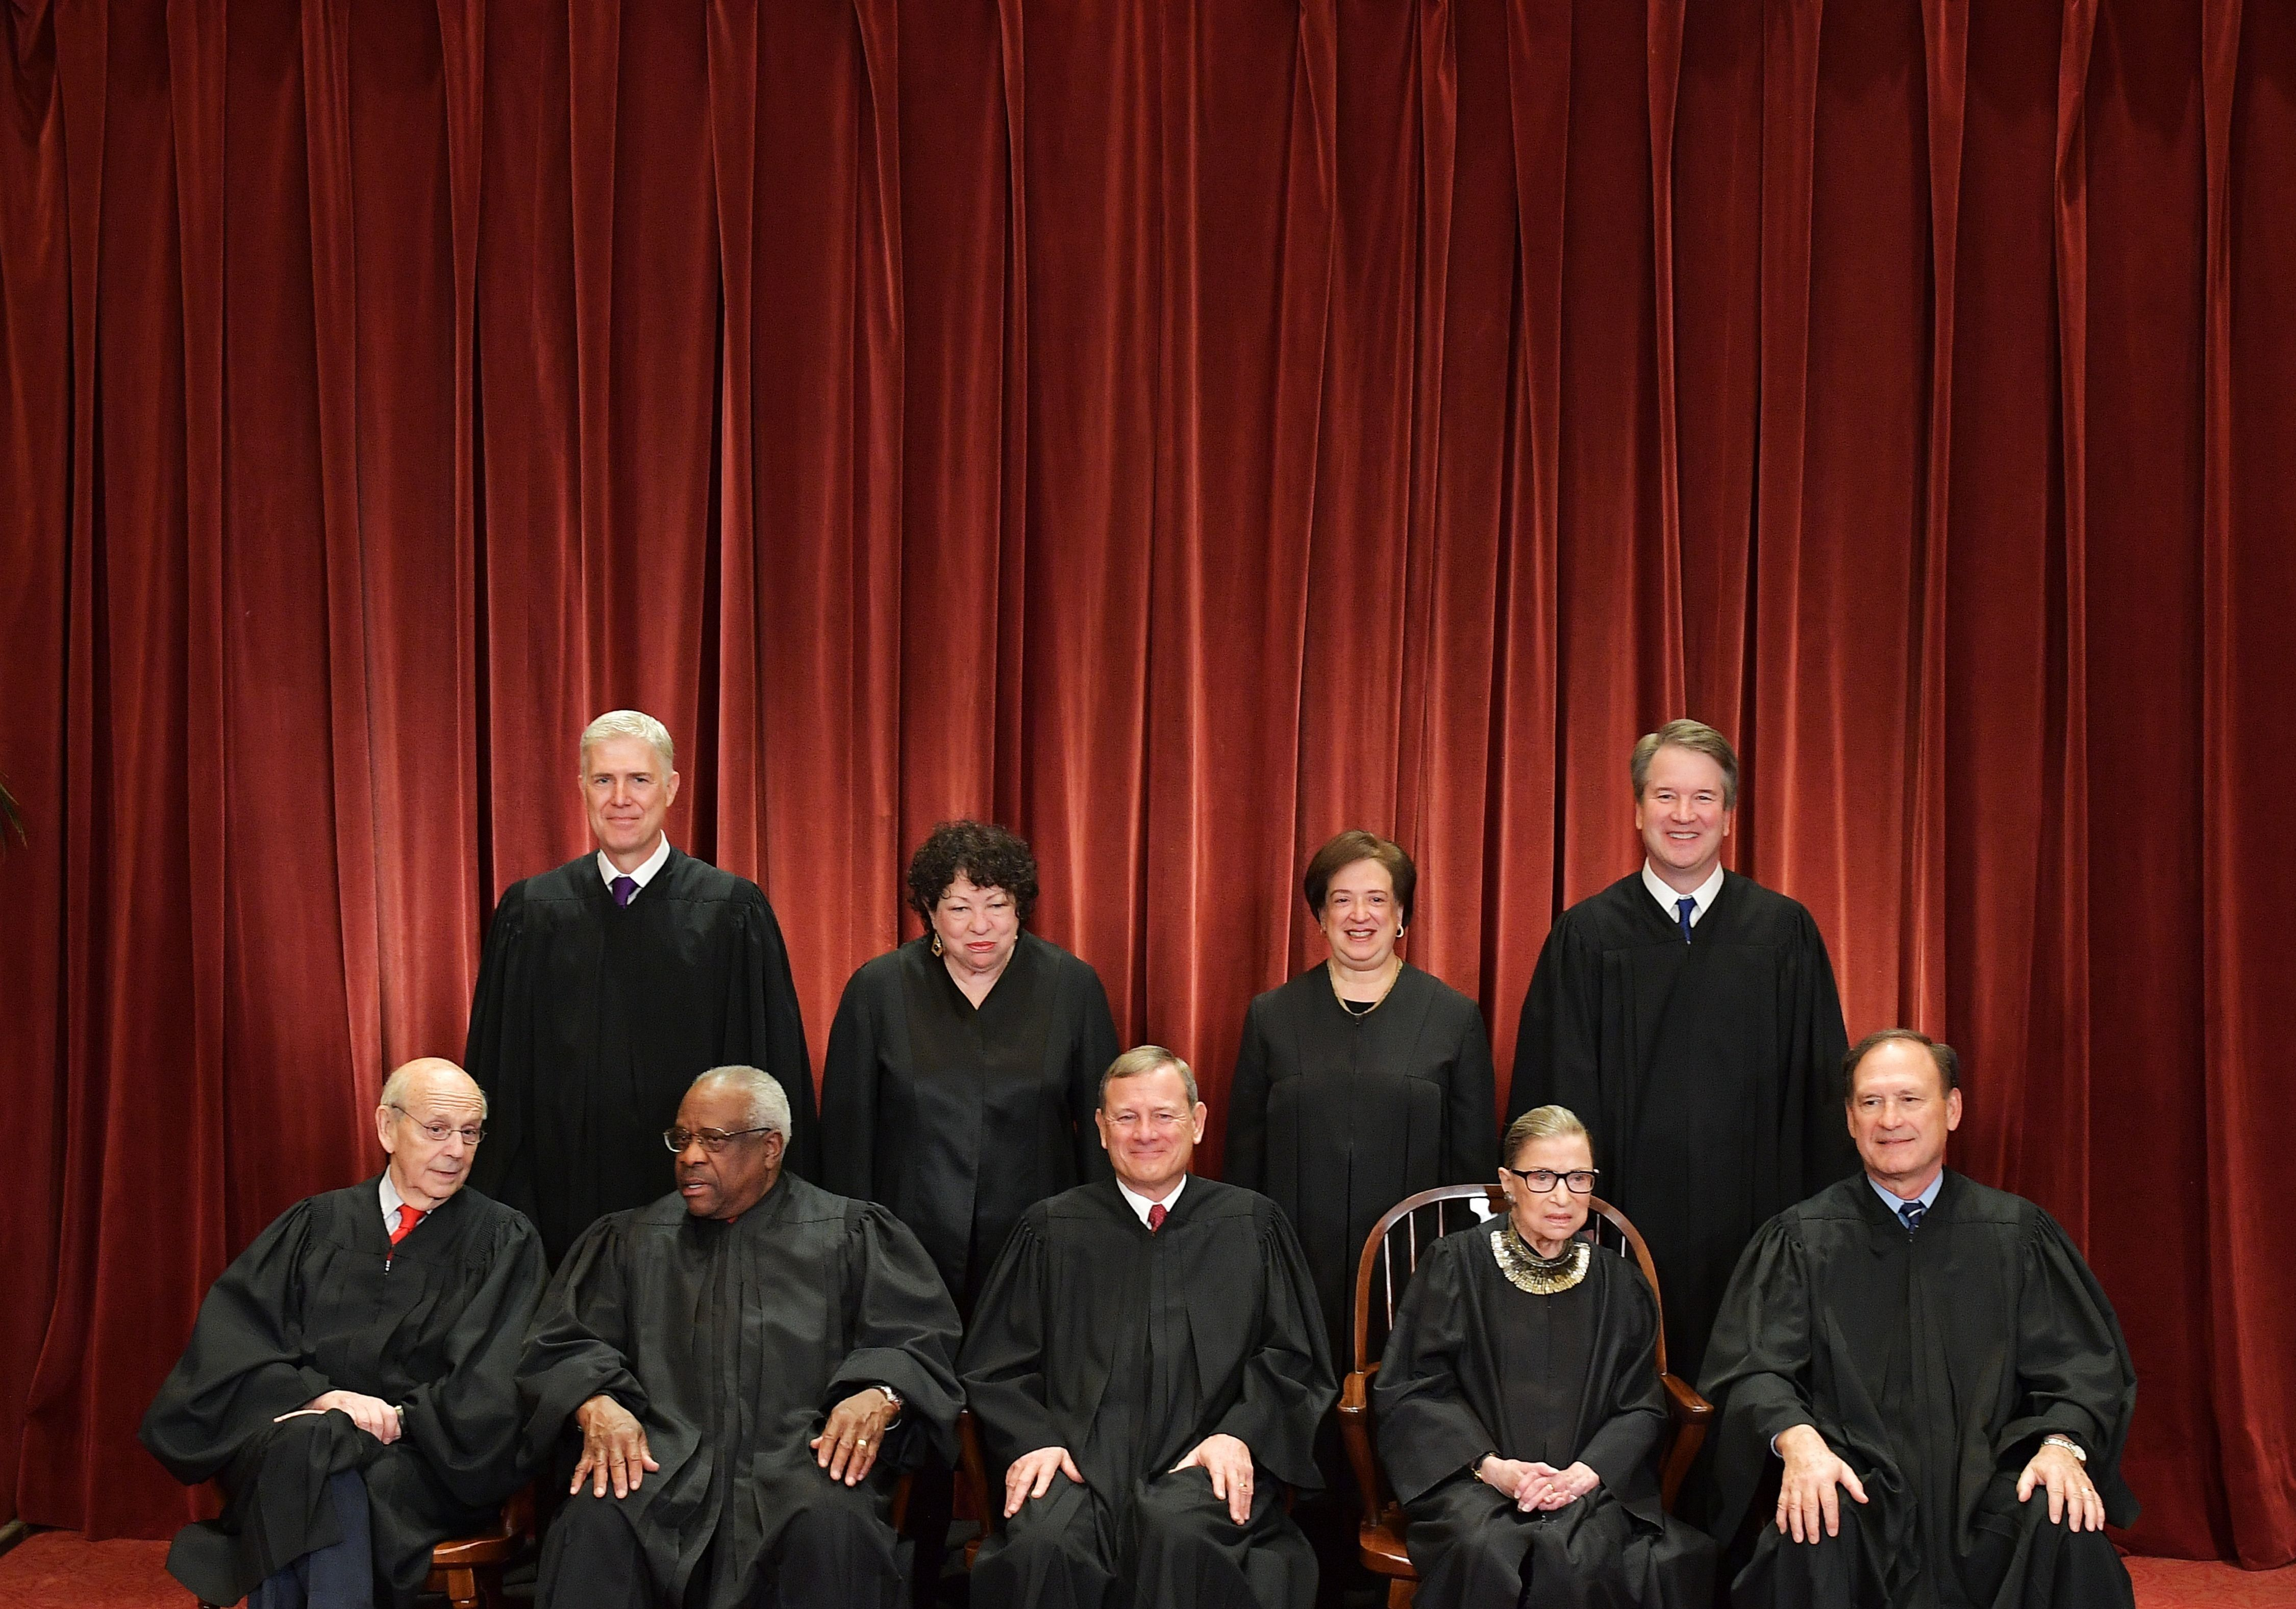 Justices of the US Supreme Court pose for their official photo at the Supreme Court in Washington, DC on November 30, 2018. - Seated from left: Associate Justices Stephen Breyer, Clarence Thomas, Chief Justice John  Roberts, Ruth Bader Ginsburg and Samuel Alito. Standing from left: Associate Justices Neil Gorsuch, Sonia Sotomayor, Elena Kagan and Brett Kavanaugh (Photo by MANDEL NGAN / AFP)        (Photo credit should read MANDEL NGAN/AFP/Getty Images)